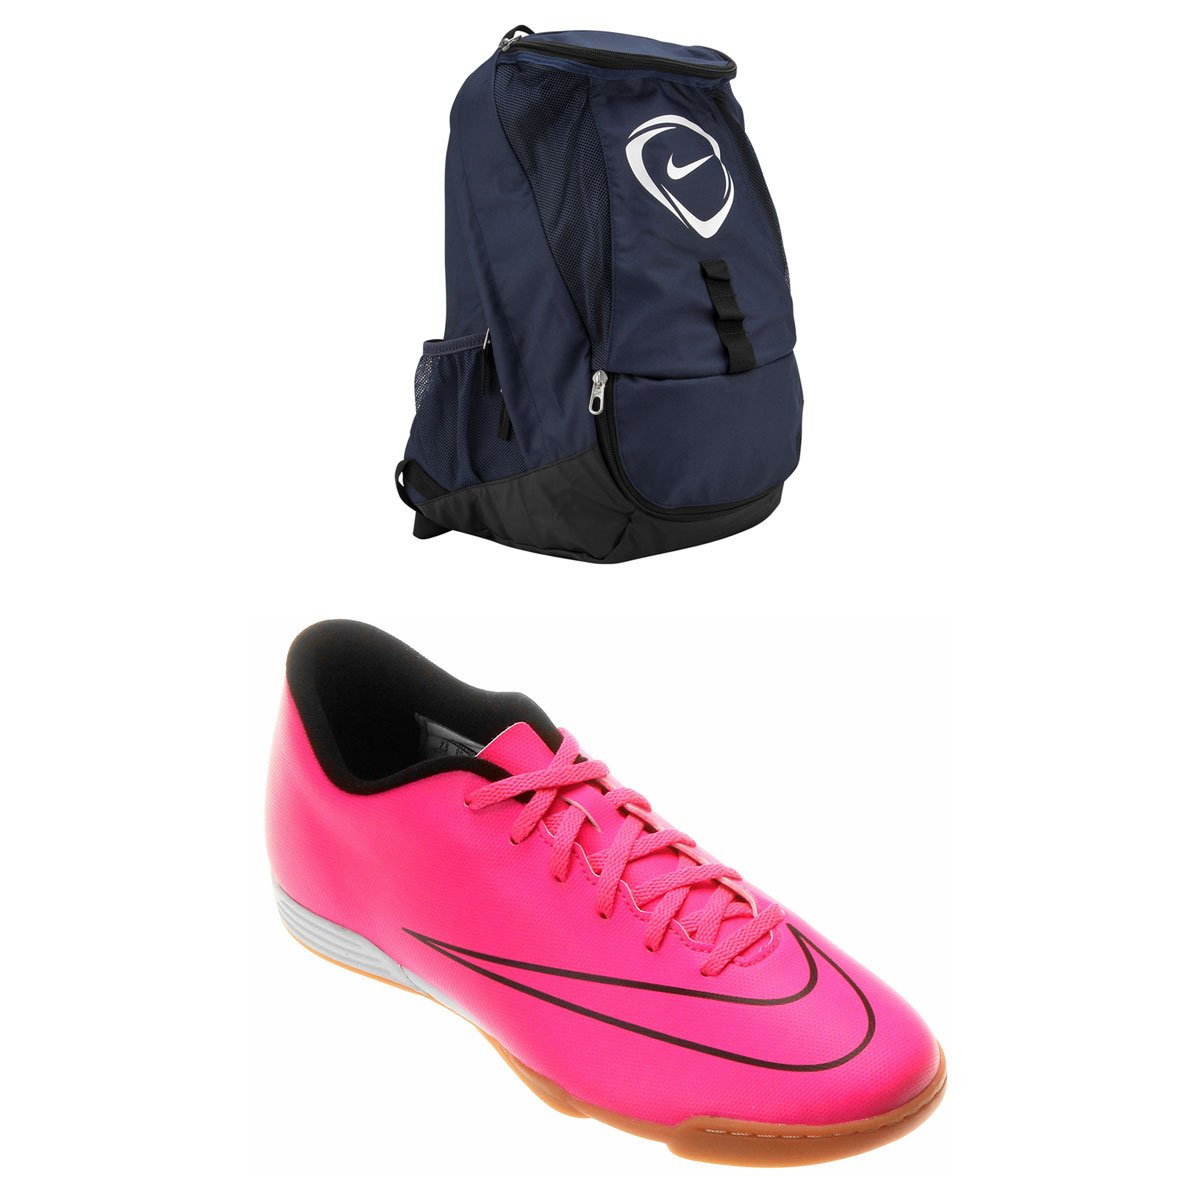 34f3c474c Kit Chuteira Nike Mercurial Vortex 2 IC Futsal + Mochila Nike Football Club  Team | Netshoes